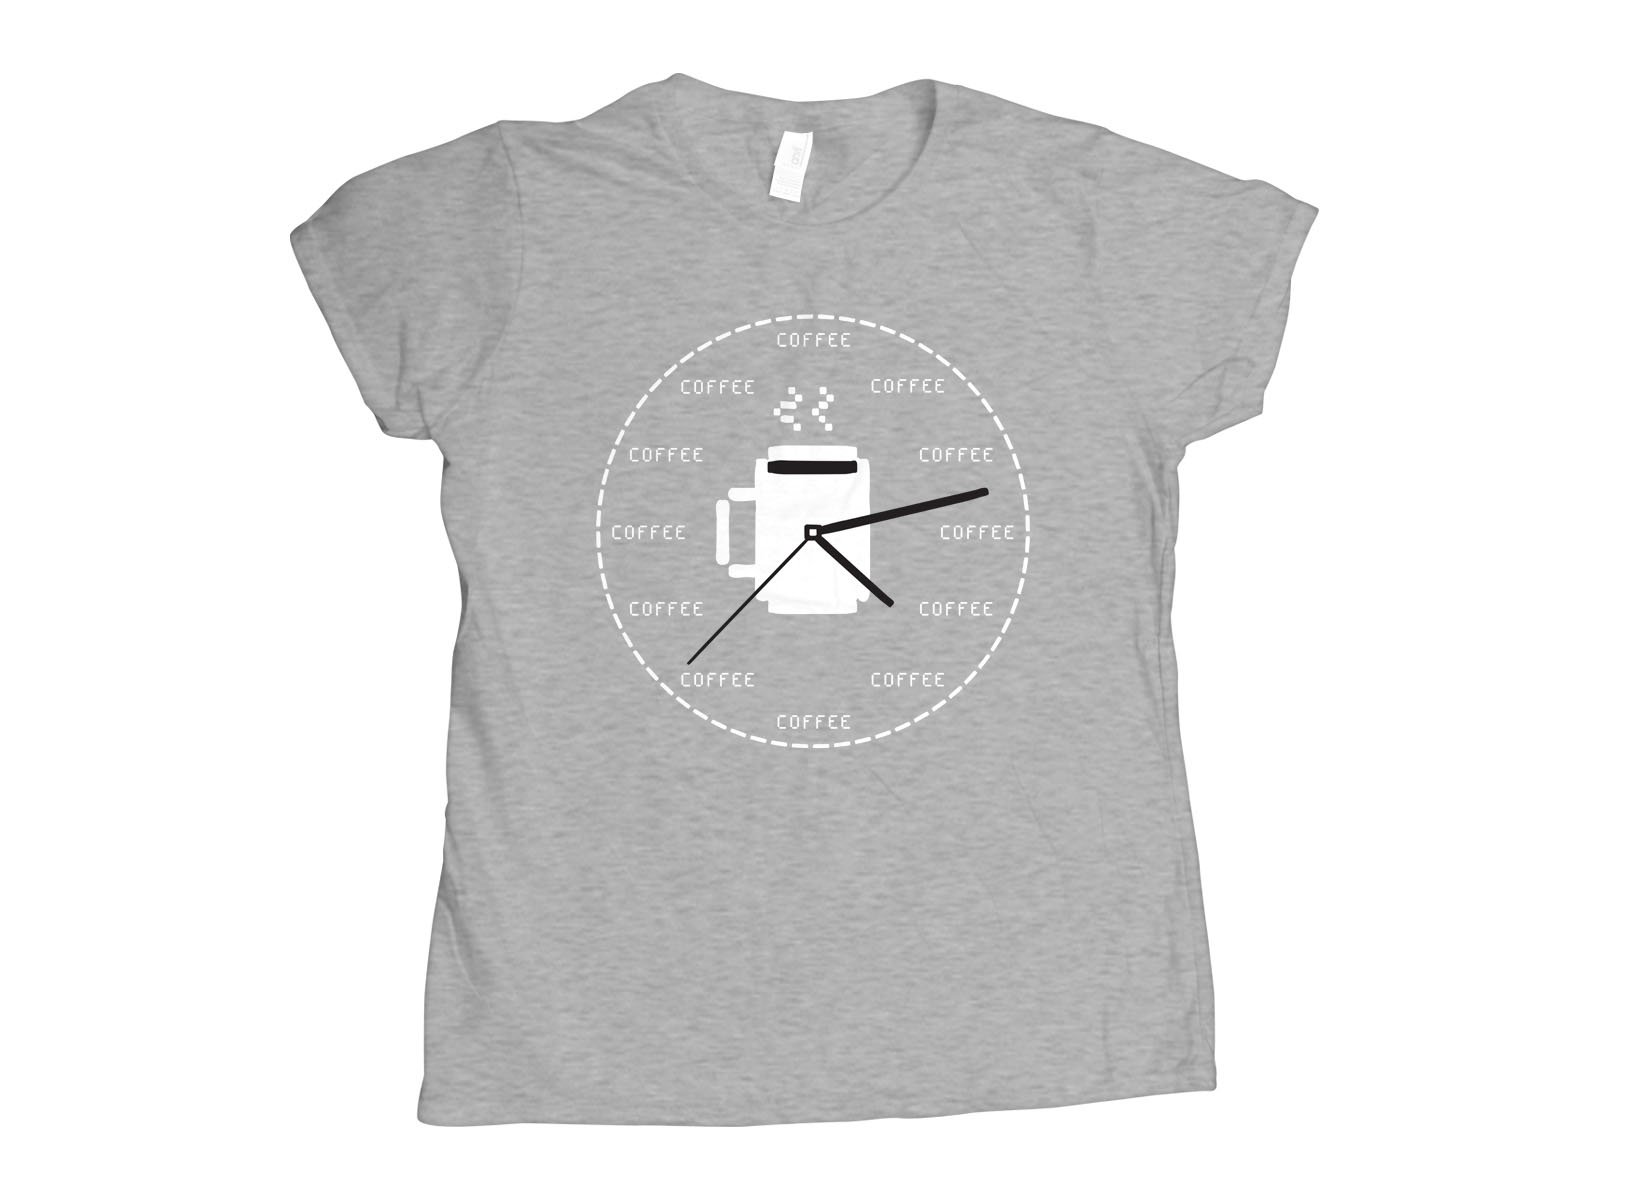 Coffee O'Clock on Womens T-Shirt